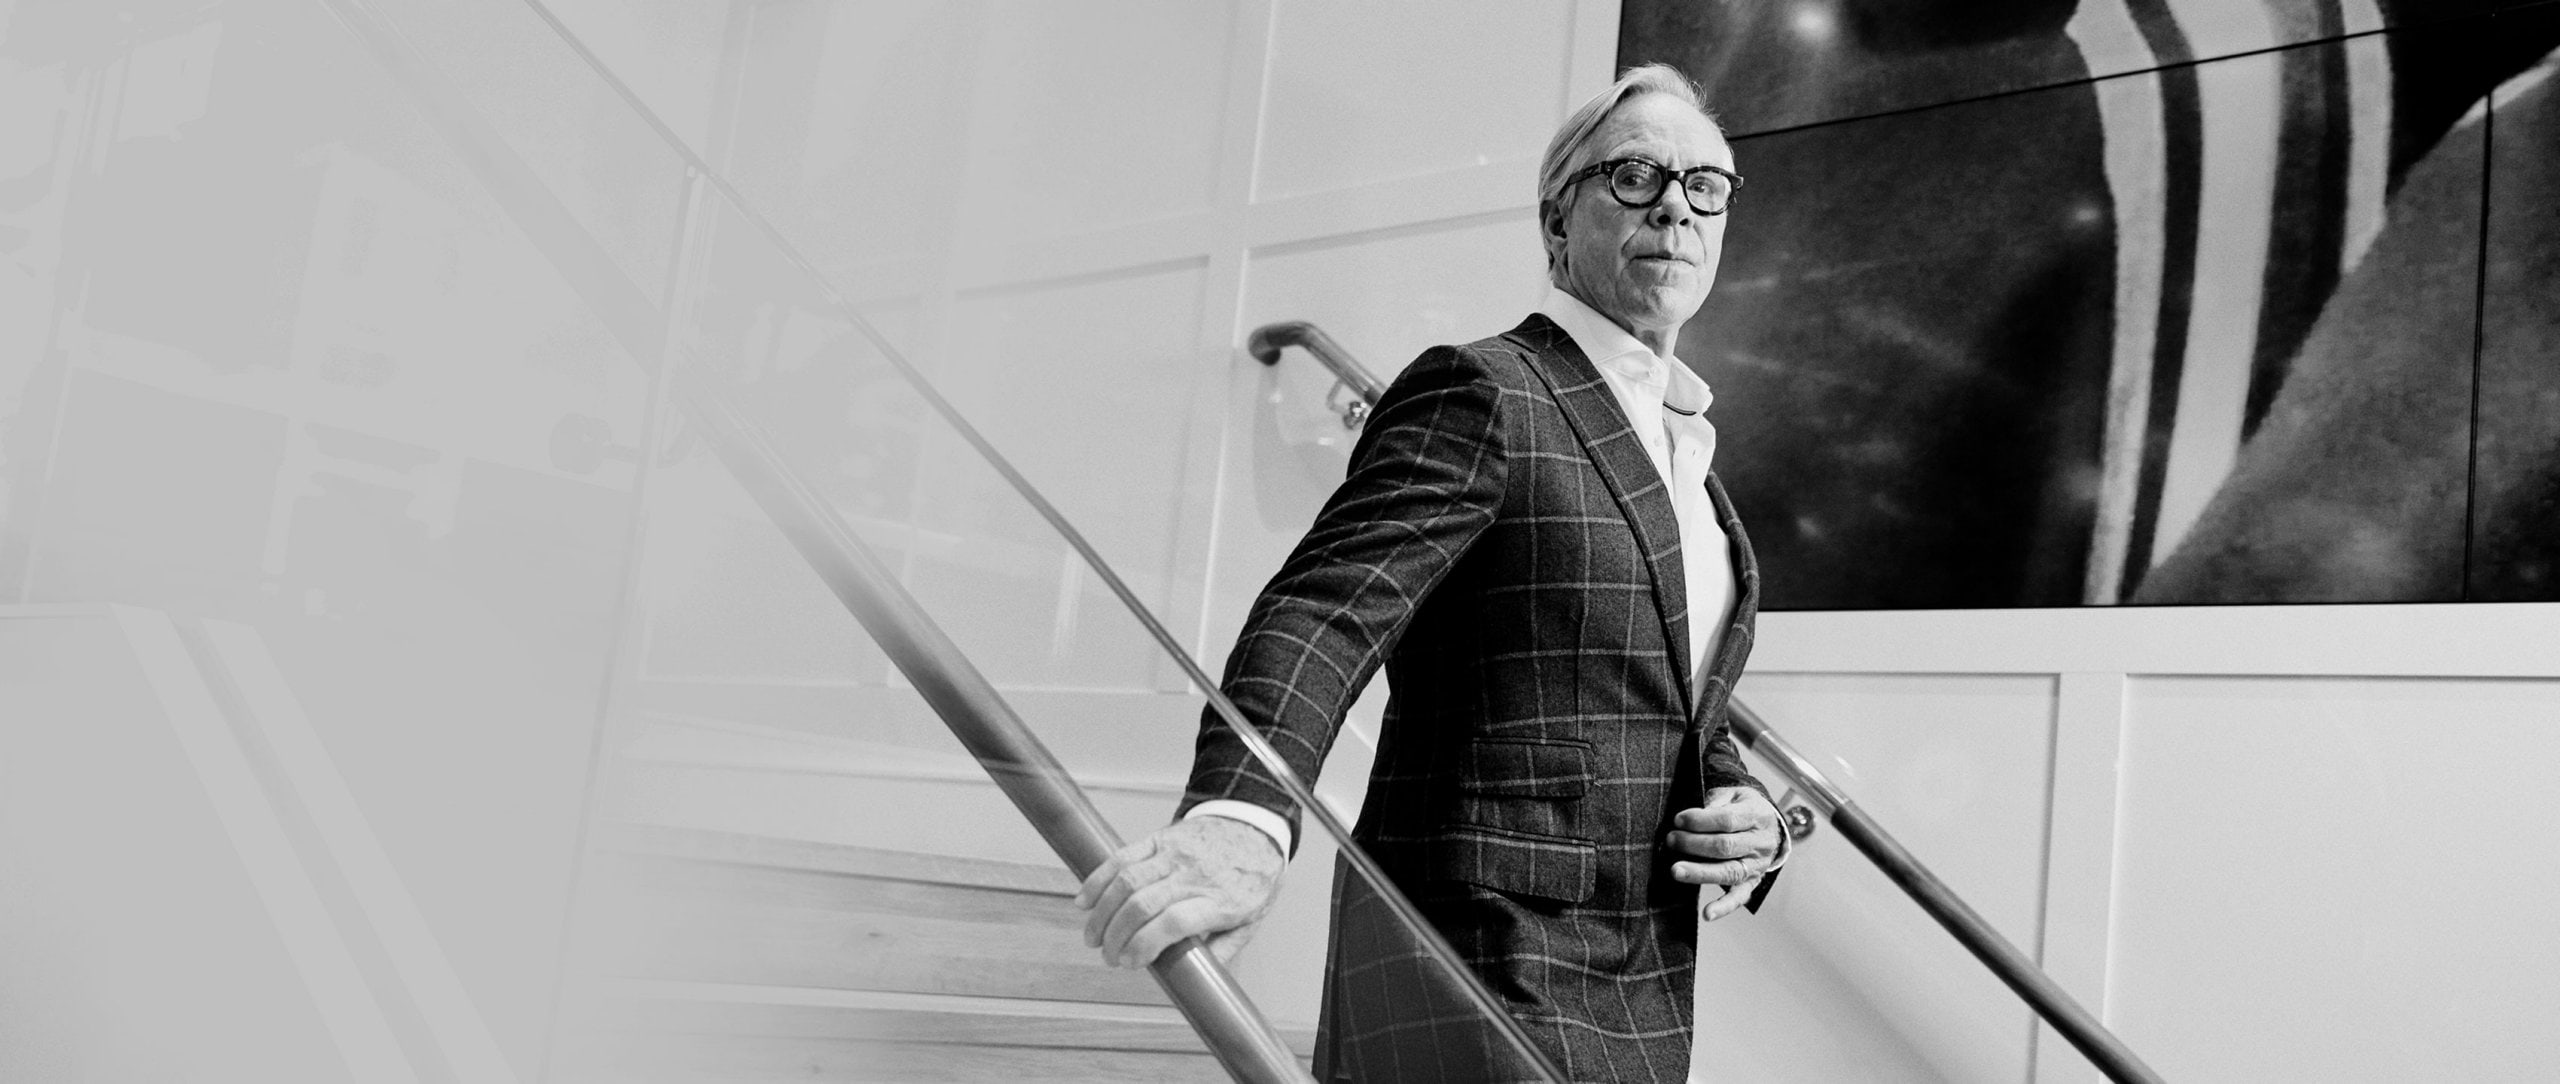 Tommy Hilfiger always had an infallible feel for a style that has its origin in American culture, but a global appeal.